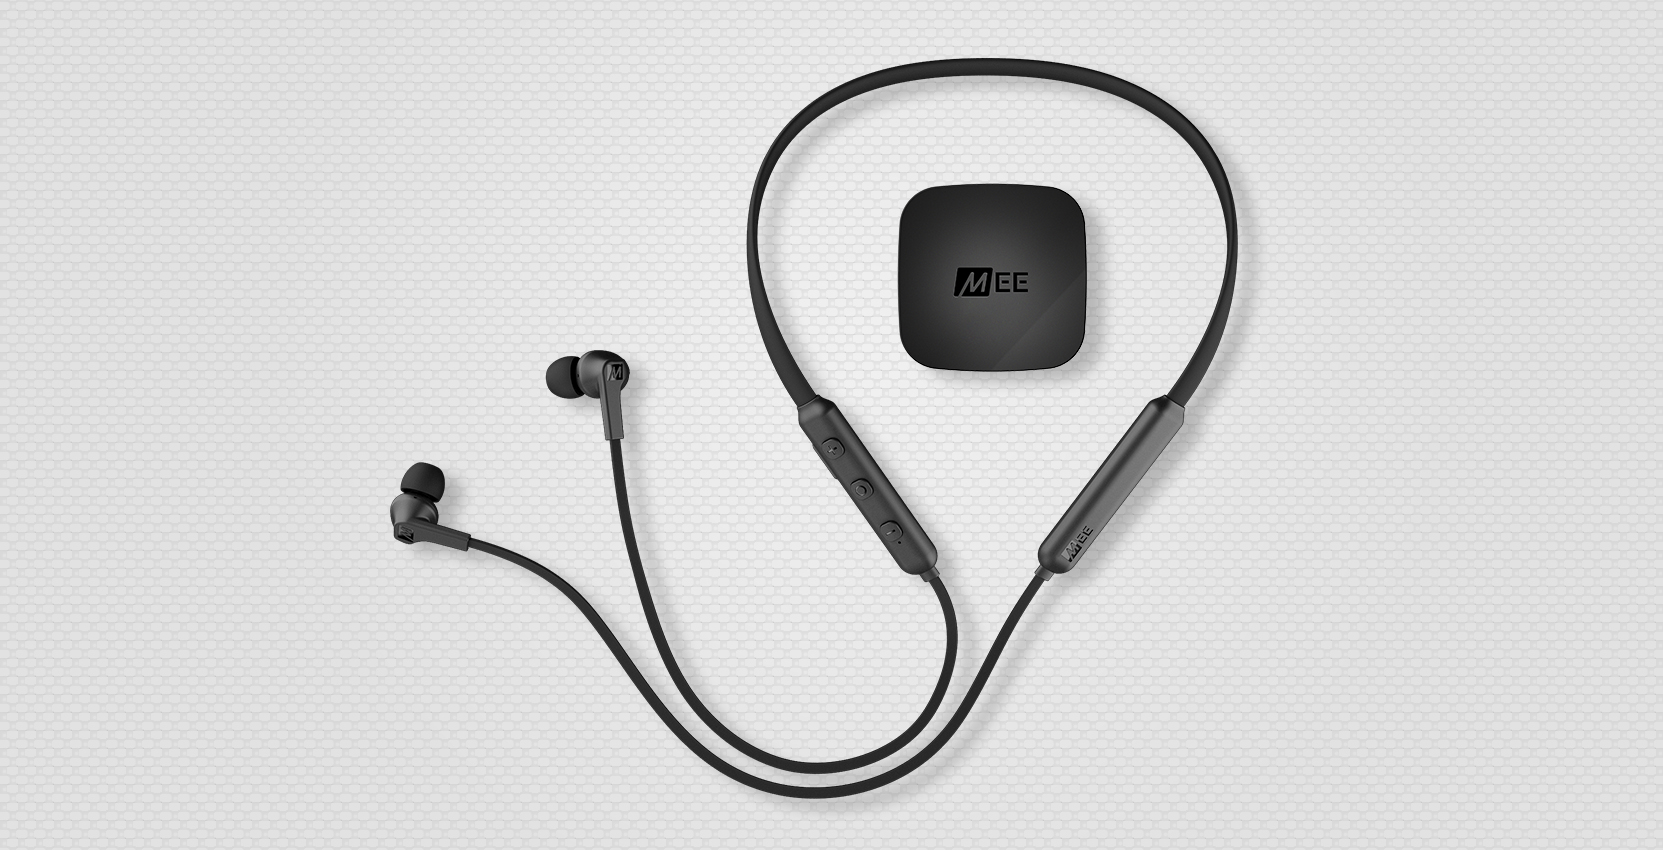 140dde14f8f The Connect transmitter enables TVs and other devices to stream full-range,  crystal clear digital sound wirelessly to up to two Bluetooth headphones or  ...